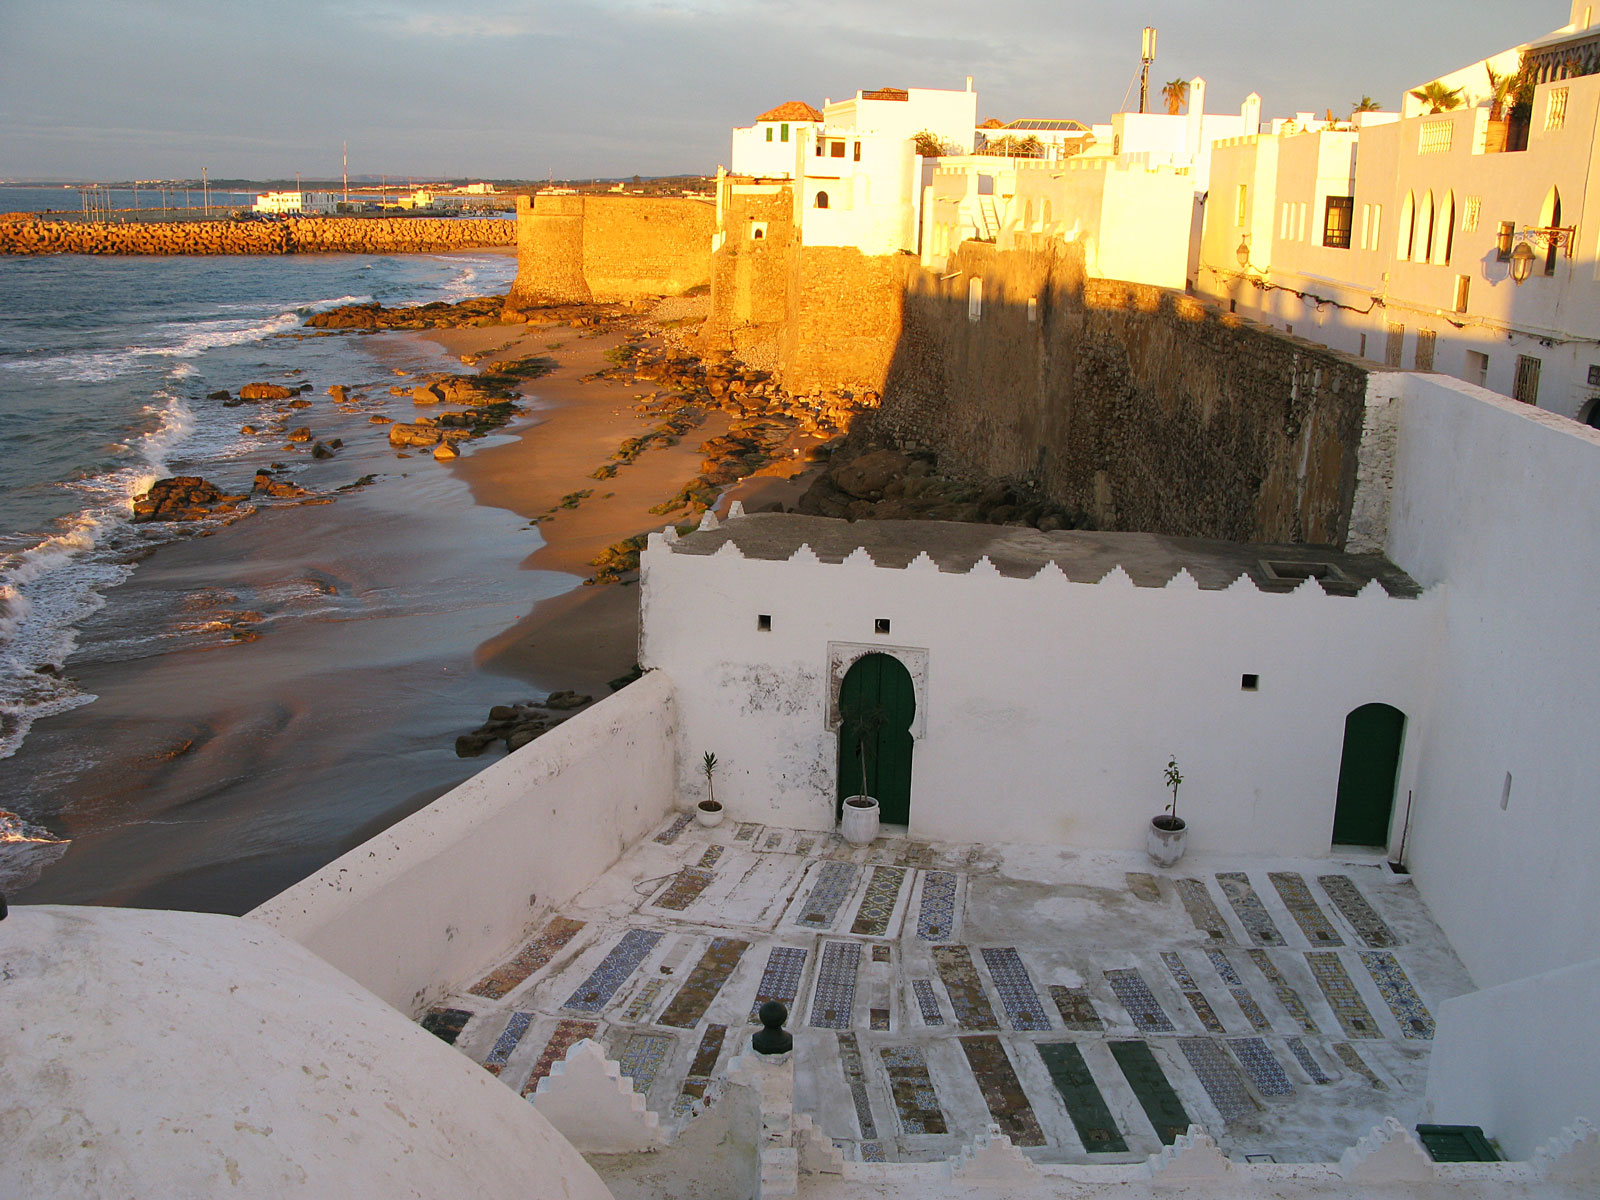 Magic sunlight over the medina of Asilah